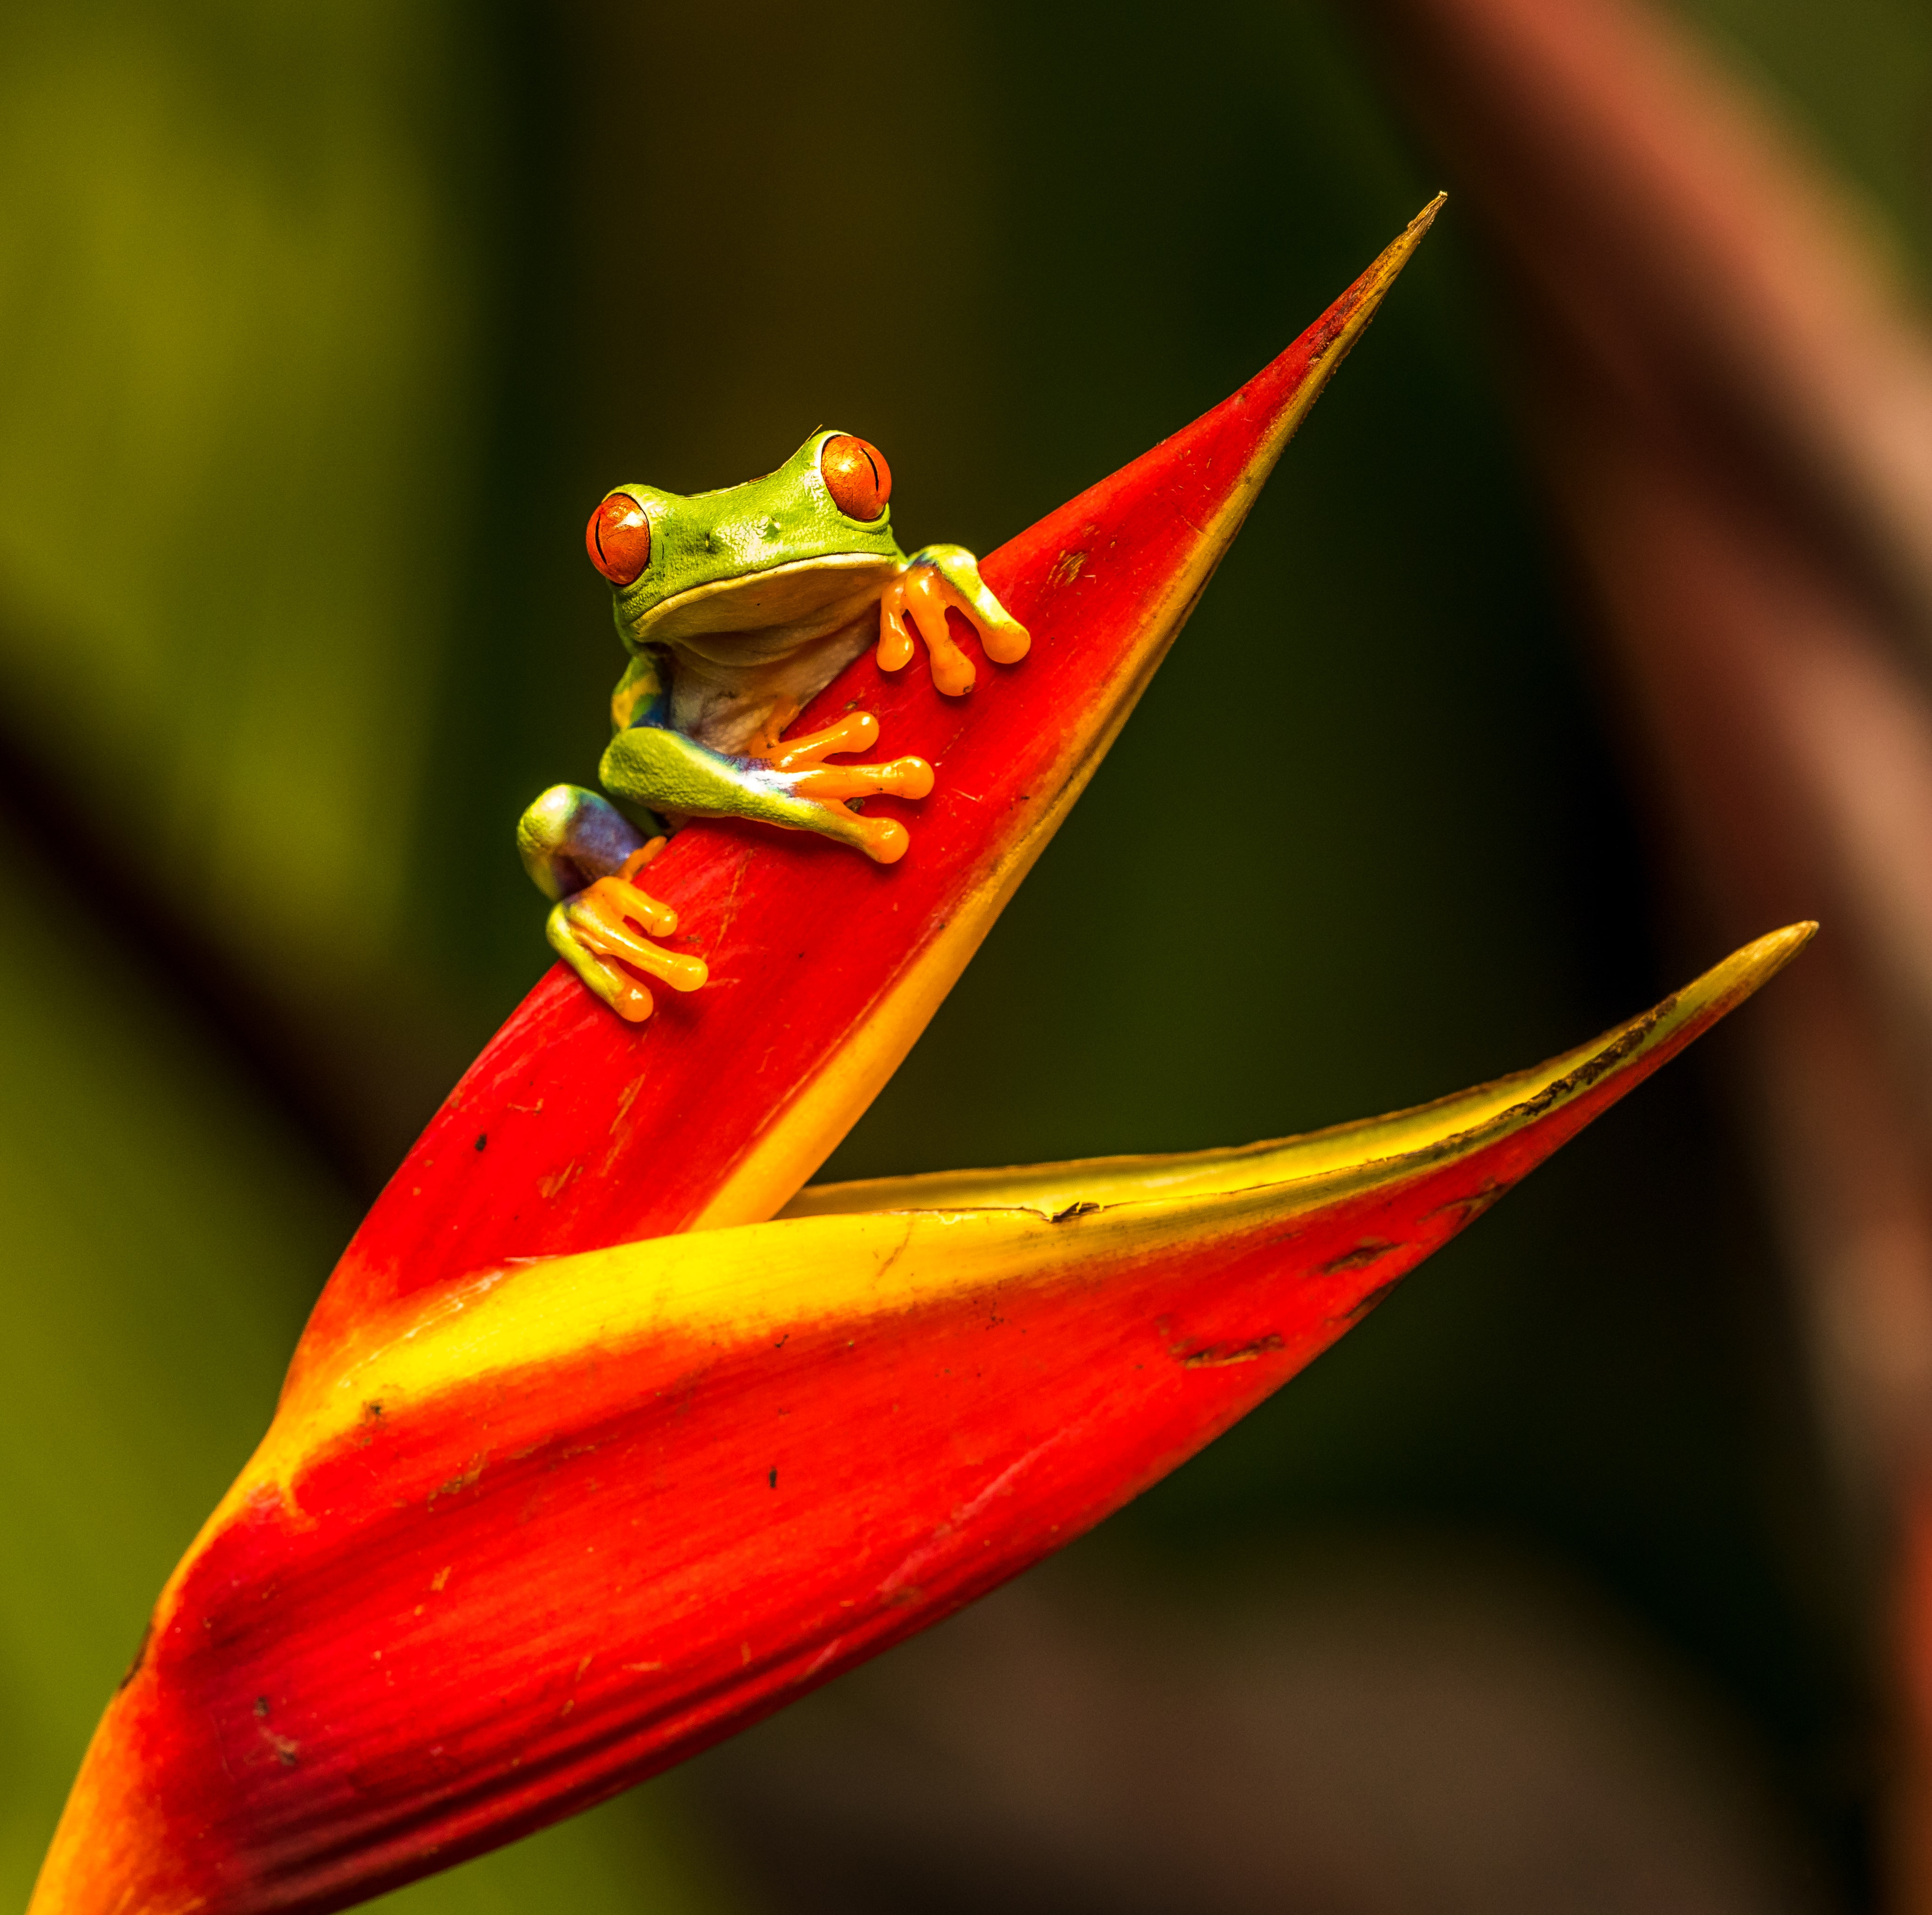 Small green frog on a red leaf.